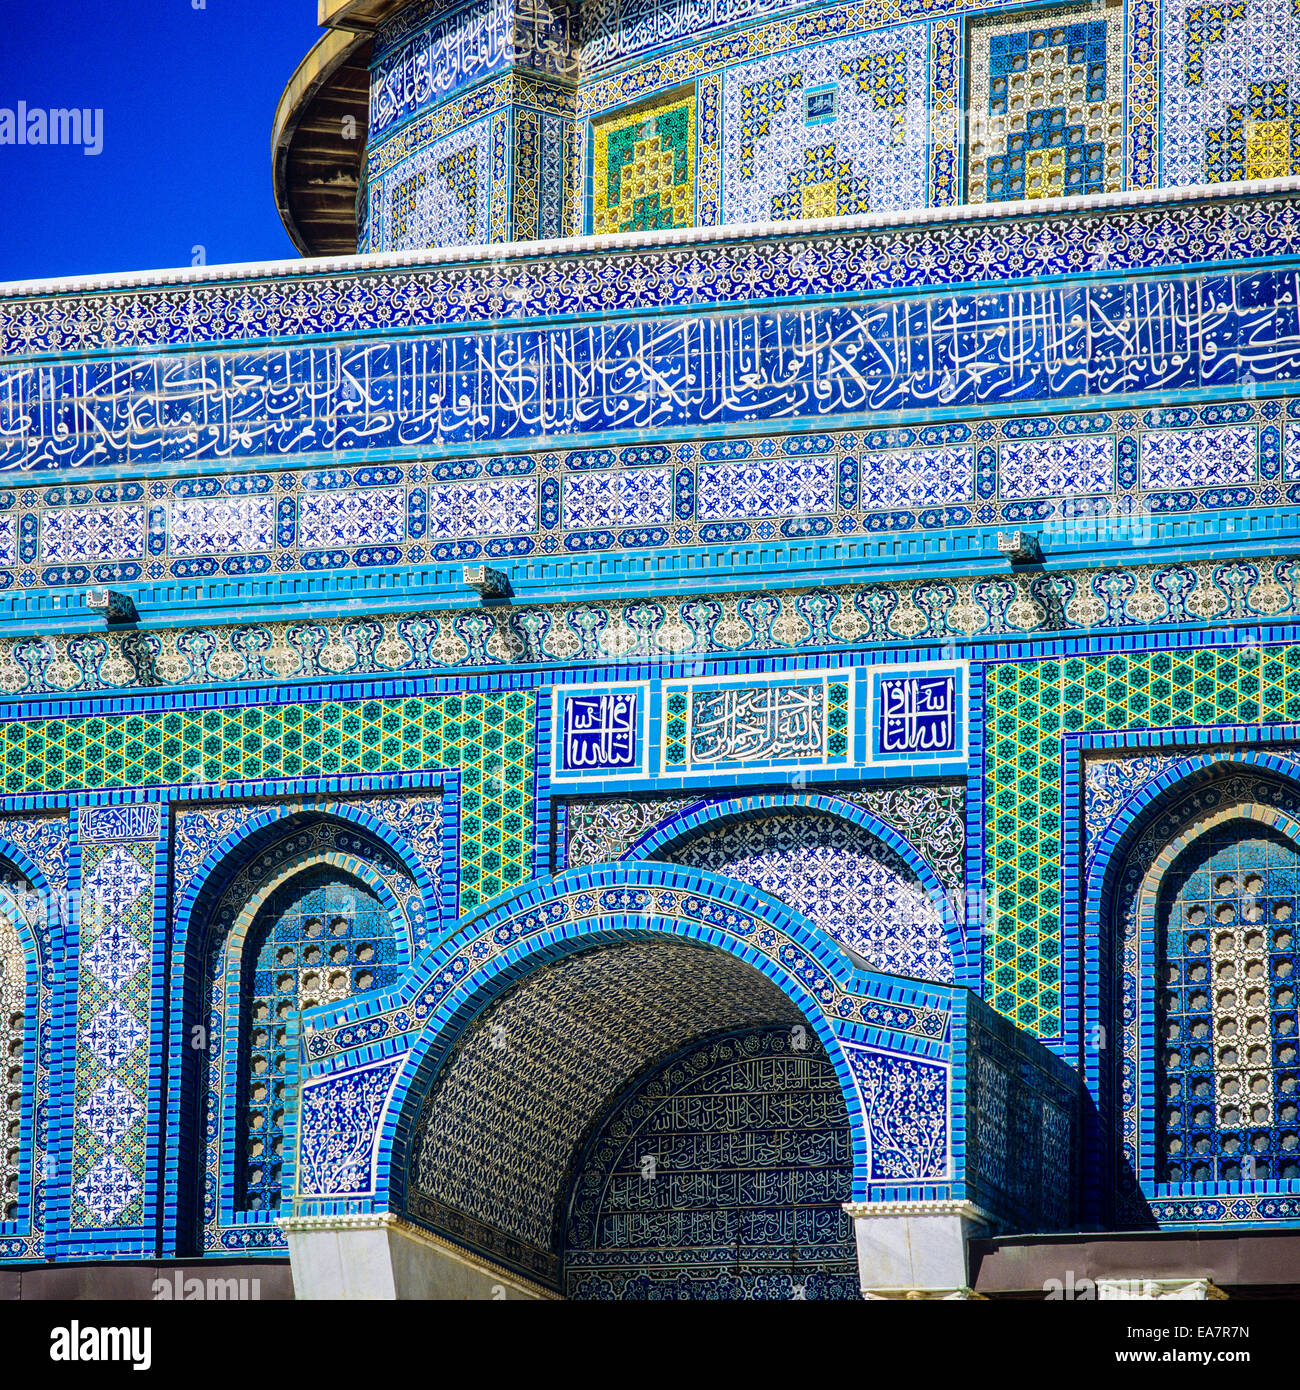 Mosaics of Dome of the Rock on Temple Mount Jerusalem Israel - Stock Image